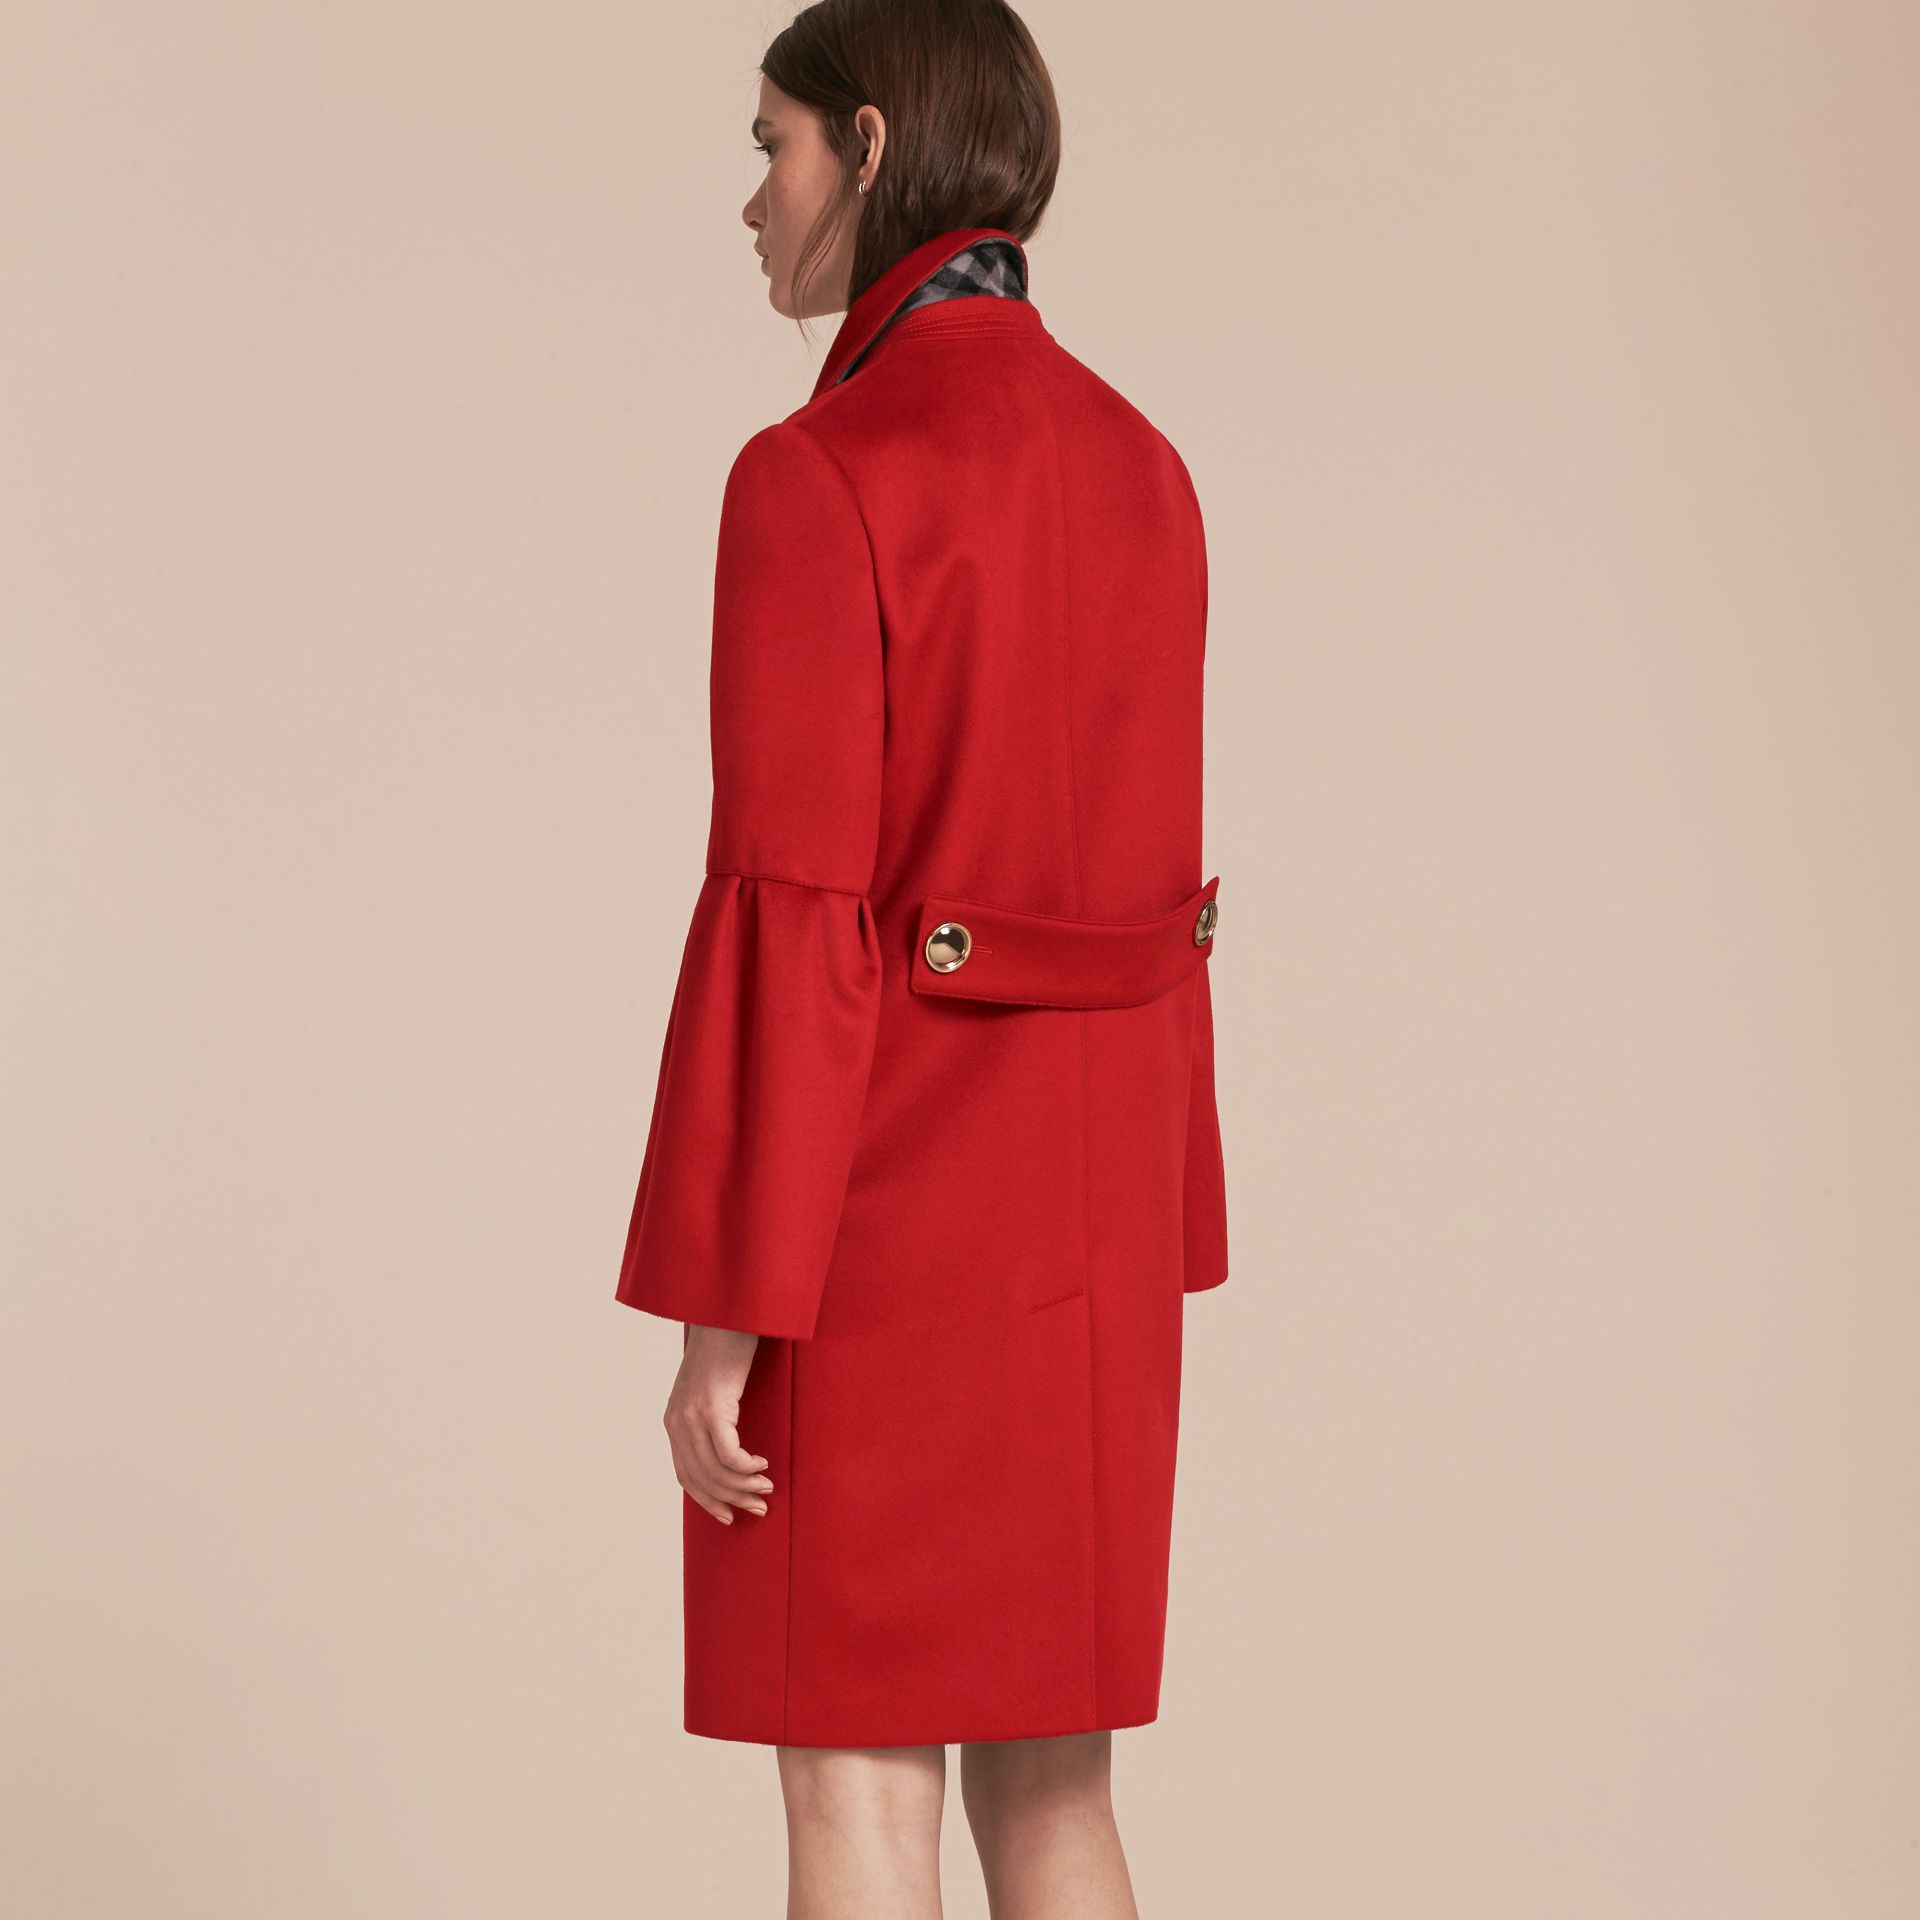 Parade red Tailored Wool Cashmere Coat with Bell Sleeves Parade - gallery image 3